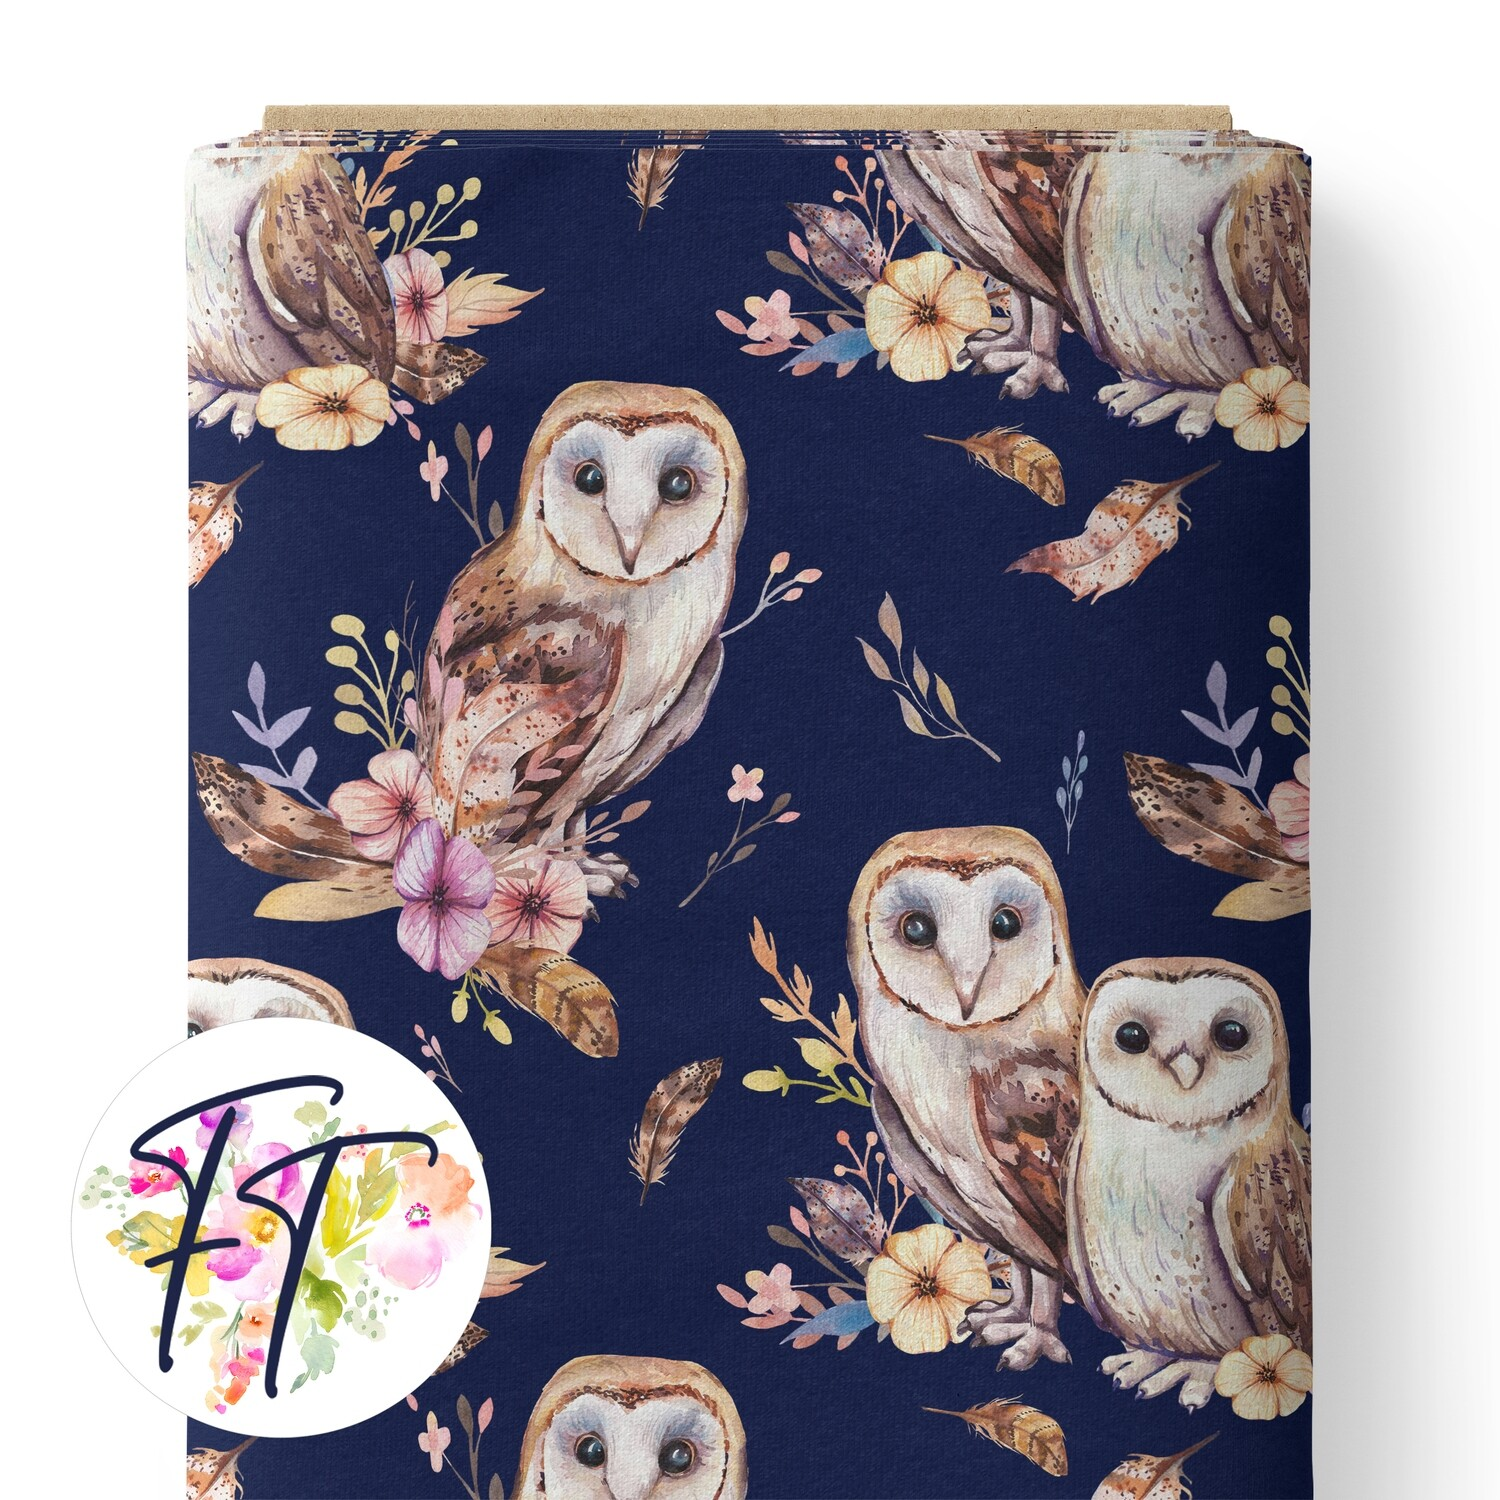 150 - Forest Owl Navy